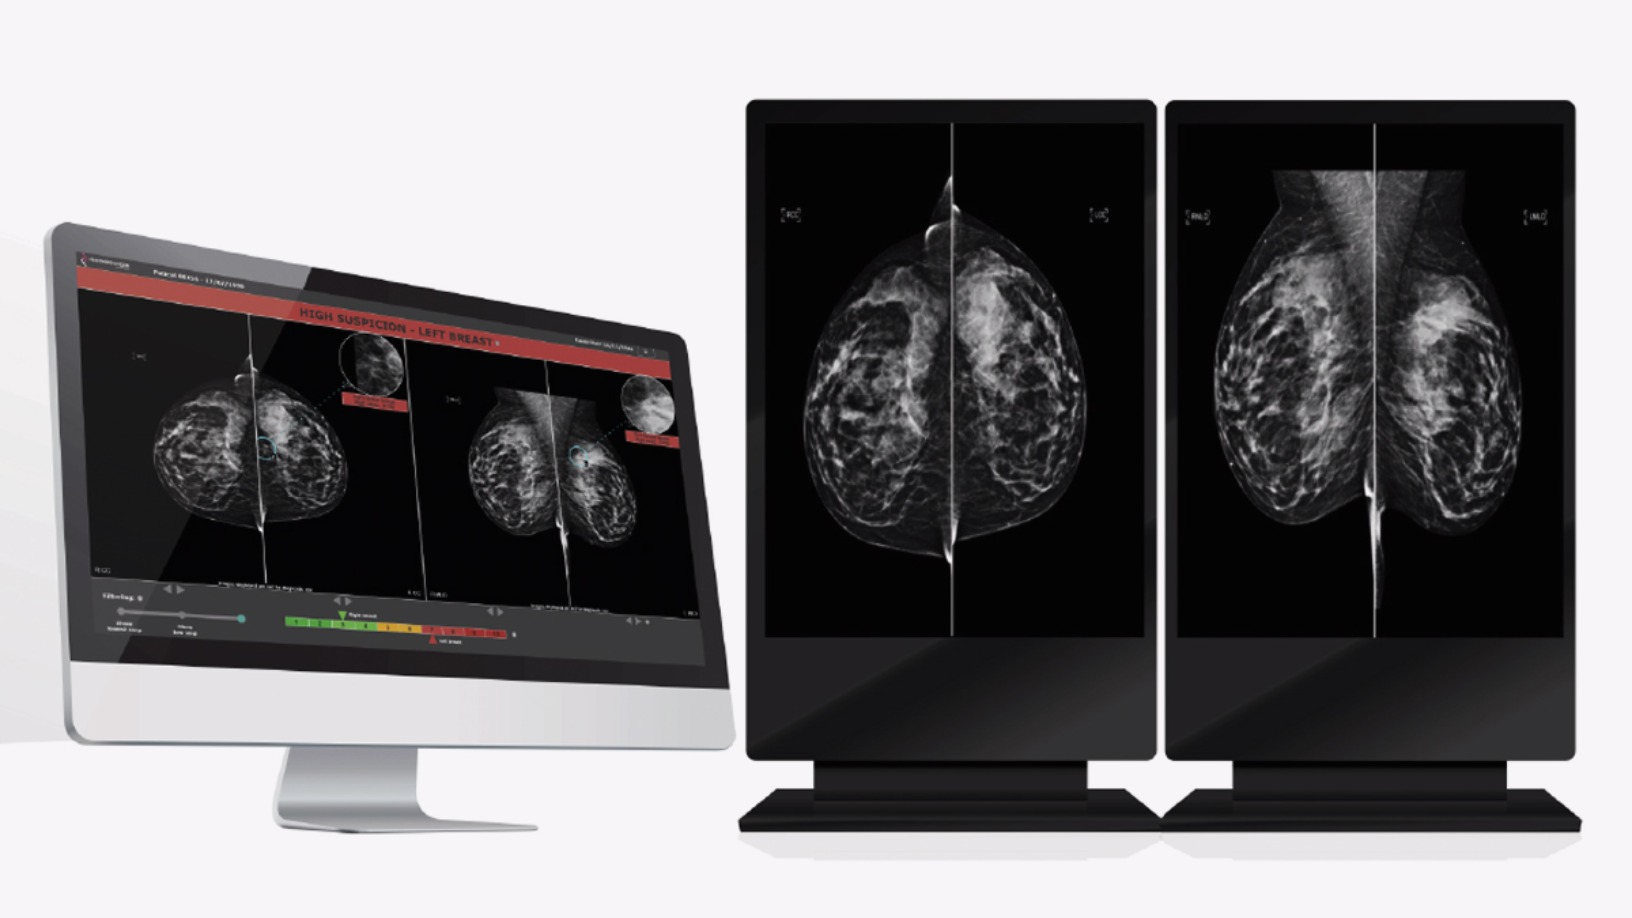 Therapixel: Using AI to improve breast cancer detection